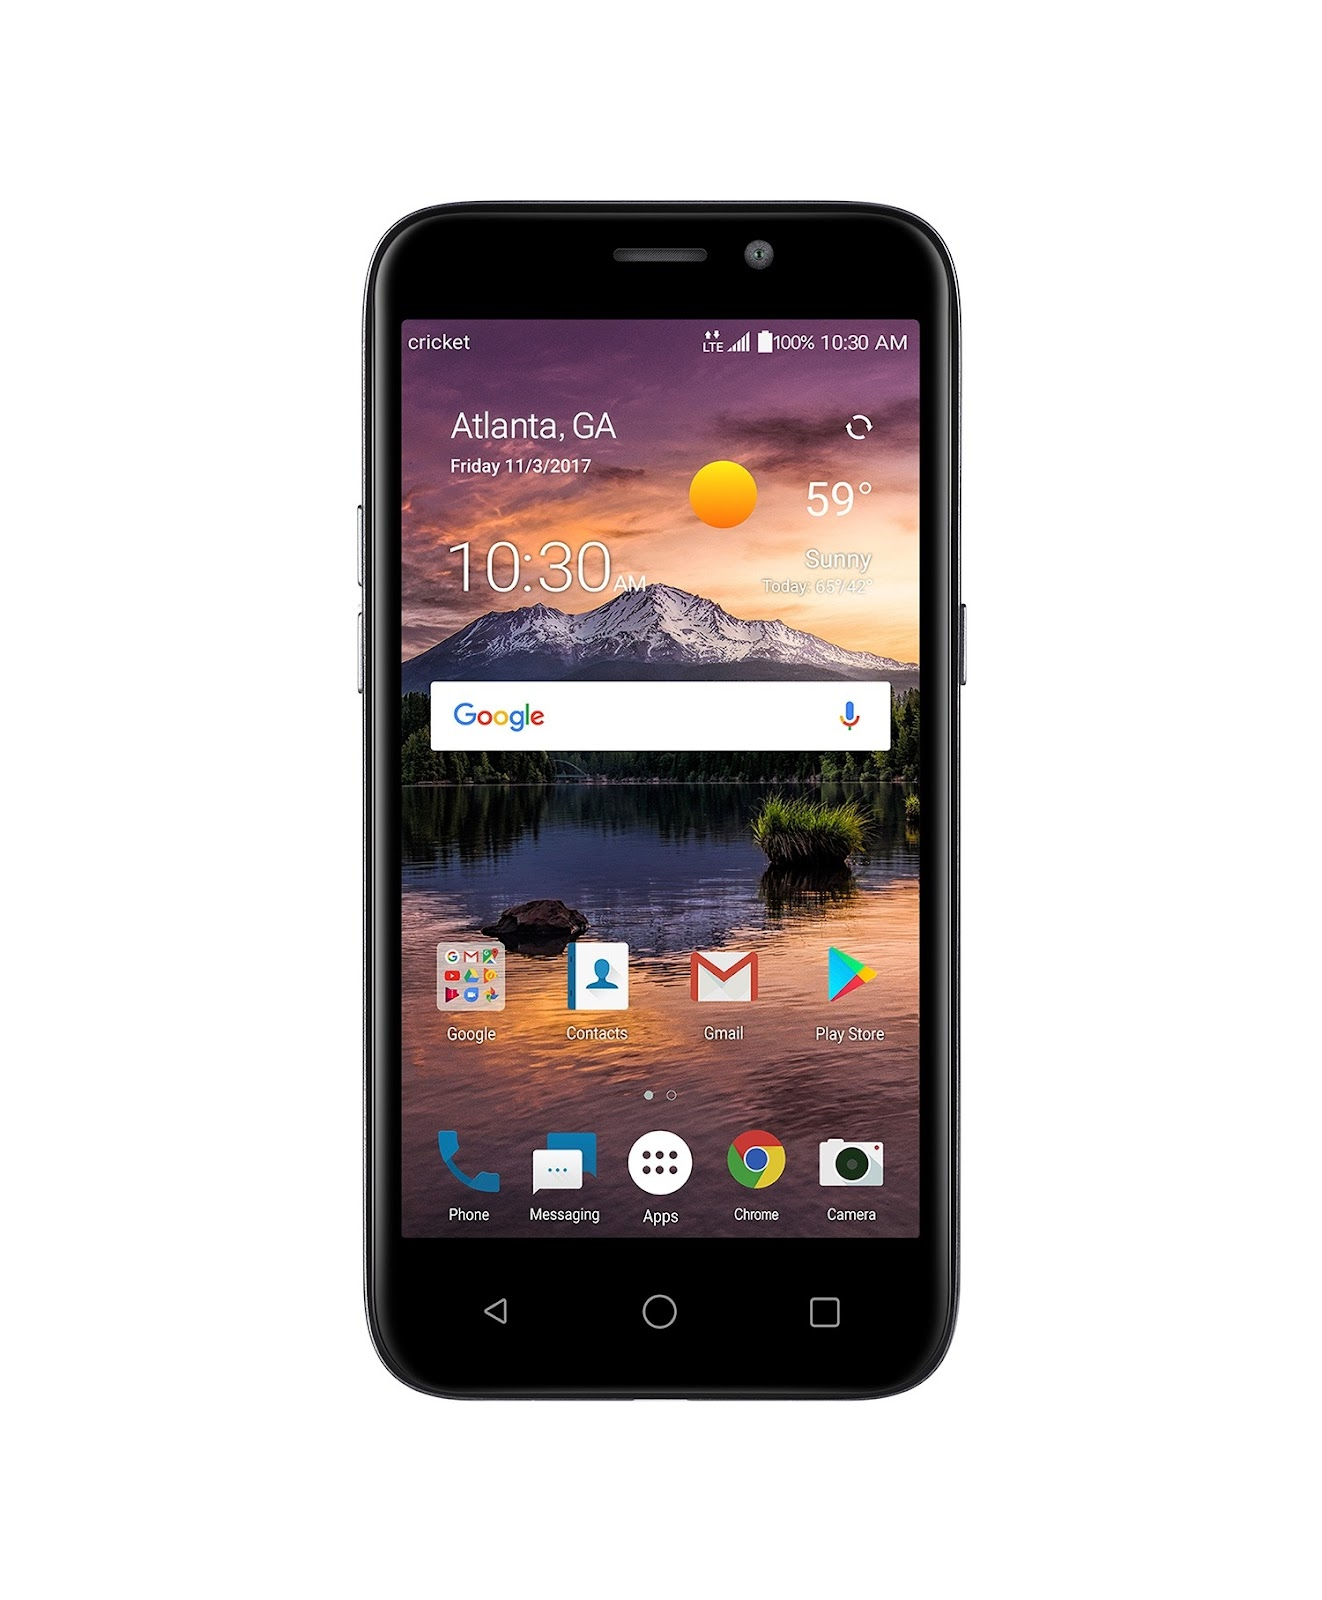 how do i get the user guide for the overture 3 z851m with cricket rh zte iqorsupport custhelp com Cricket ZTE 4G Phone New ZTE Cricket Phone